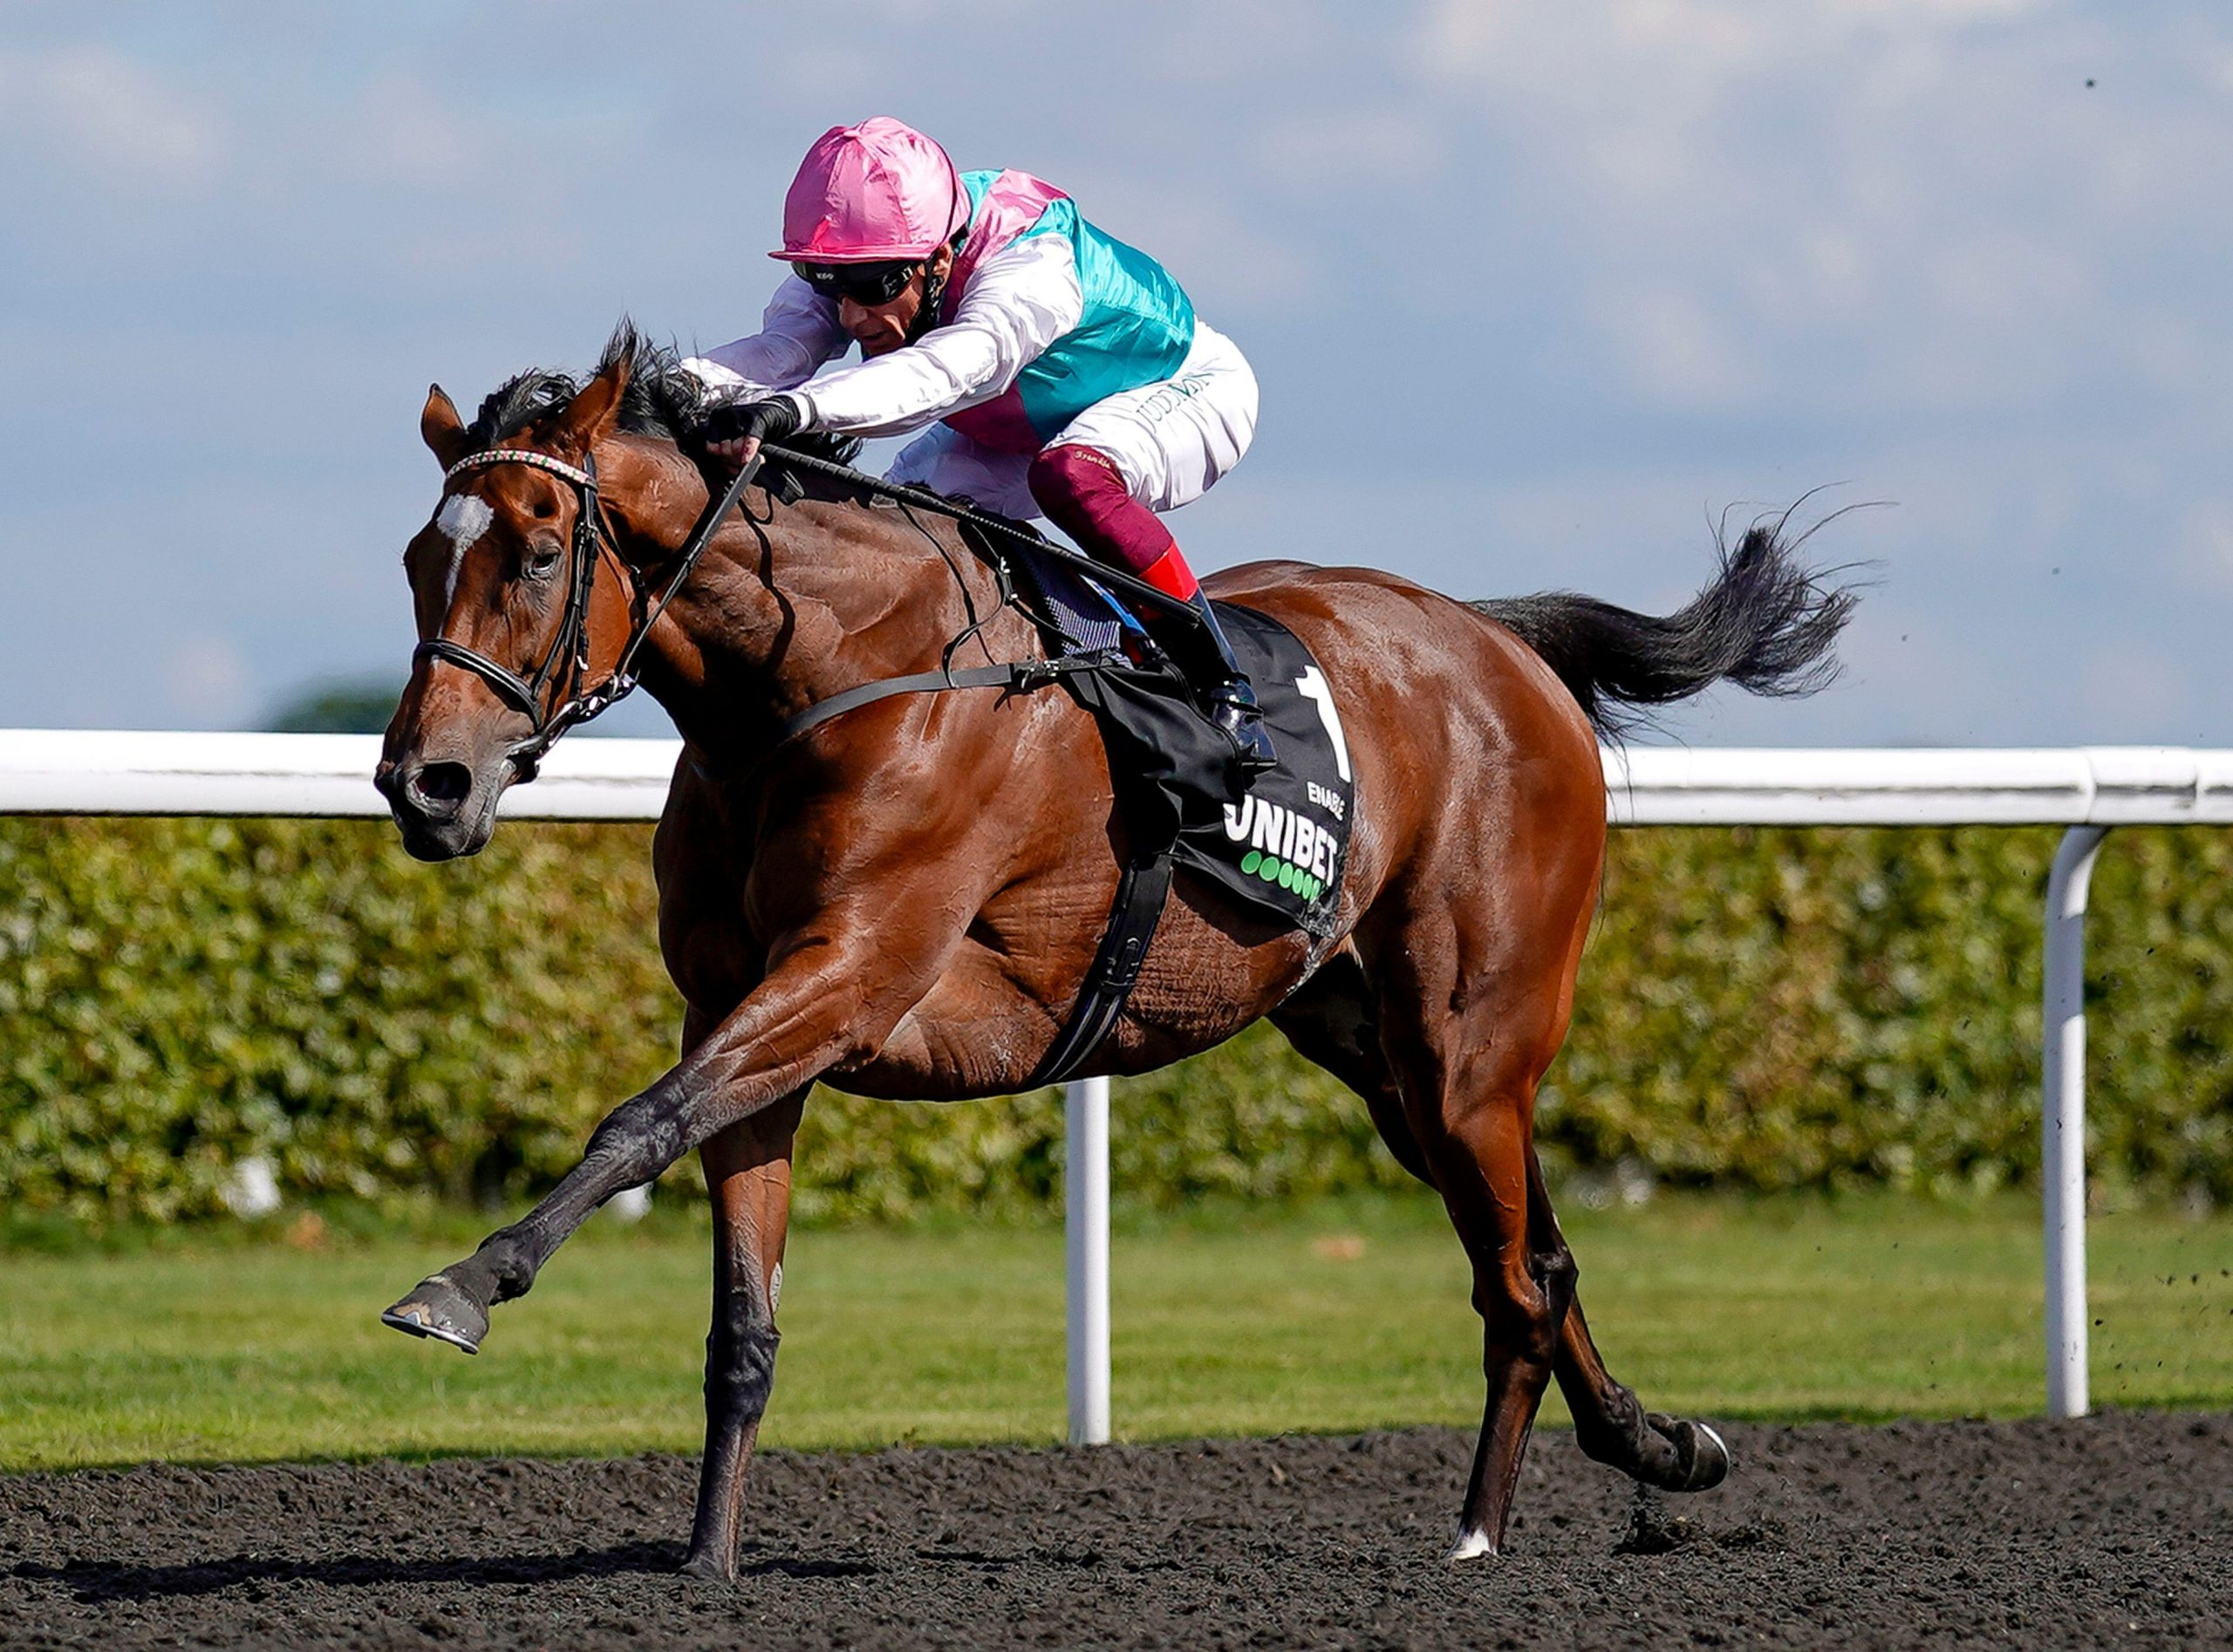 Enable ridden by Frankie Dettori wins The Unibet September Stakes at Kempton Park Racecourse.